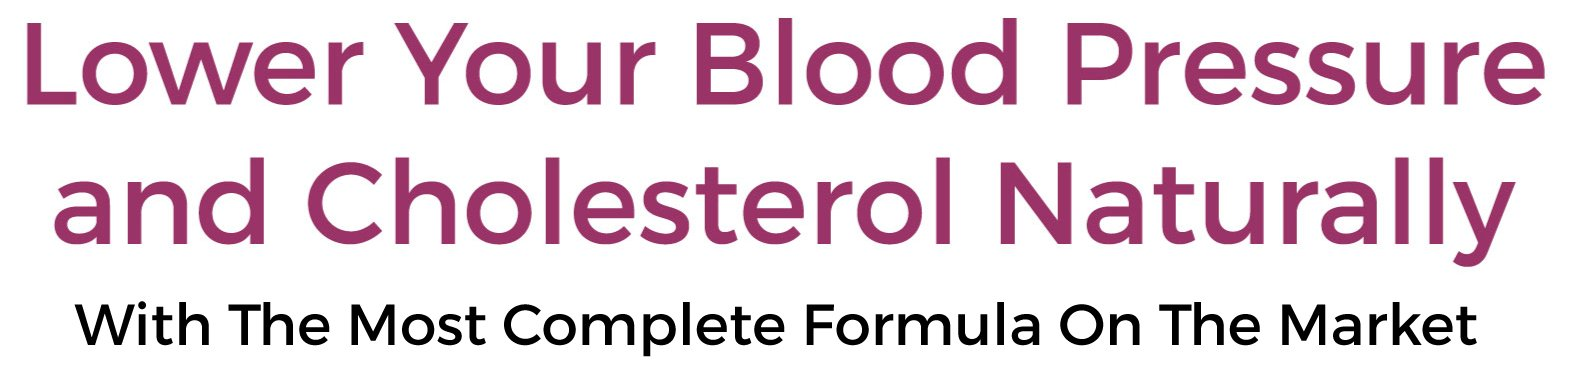 lower your blood pressure and cholesterol naturally